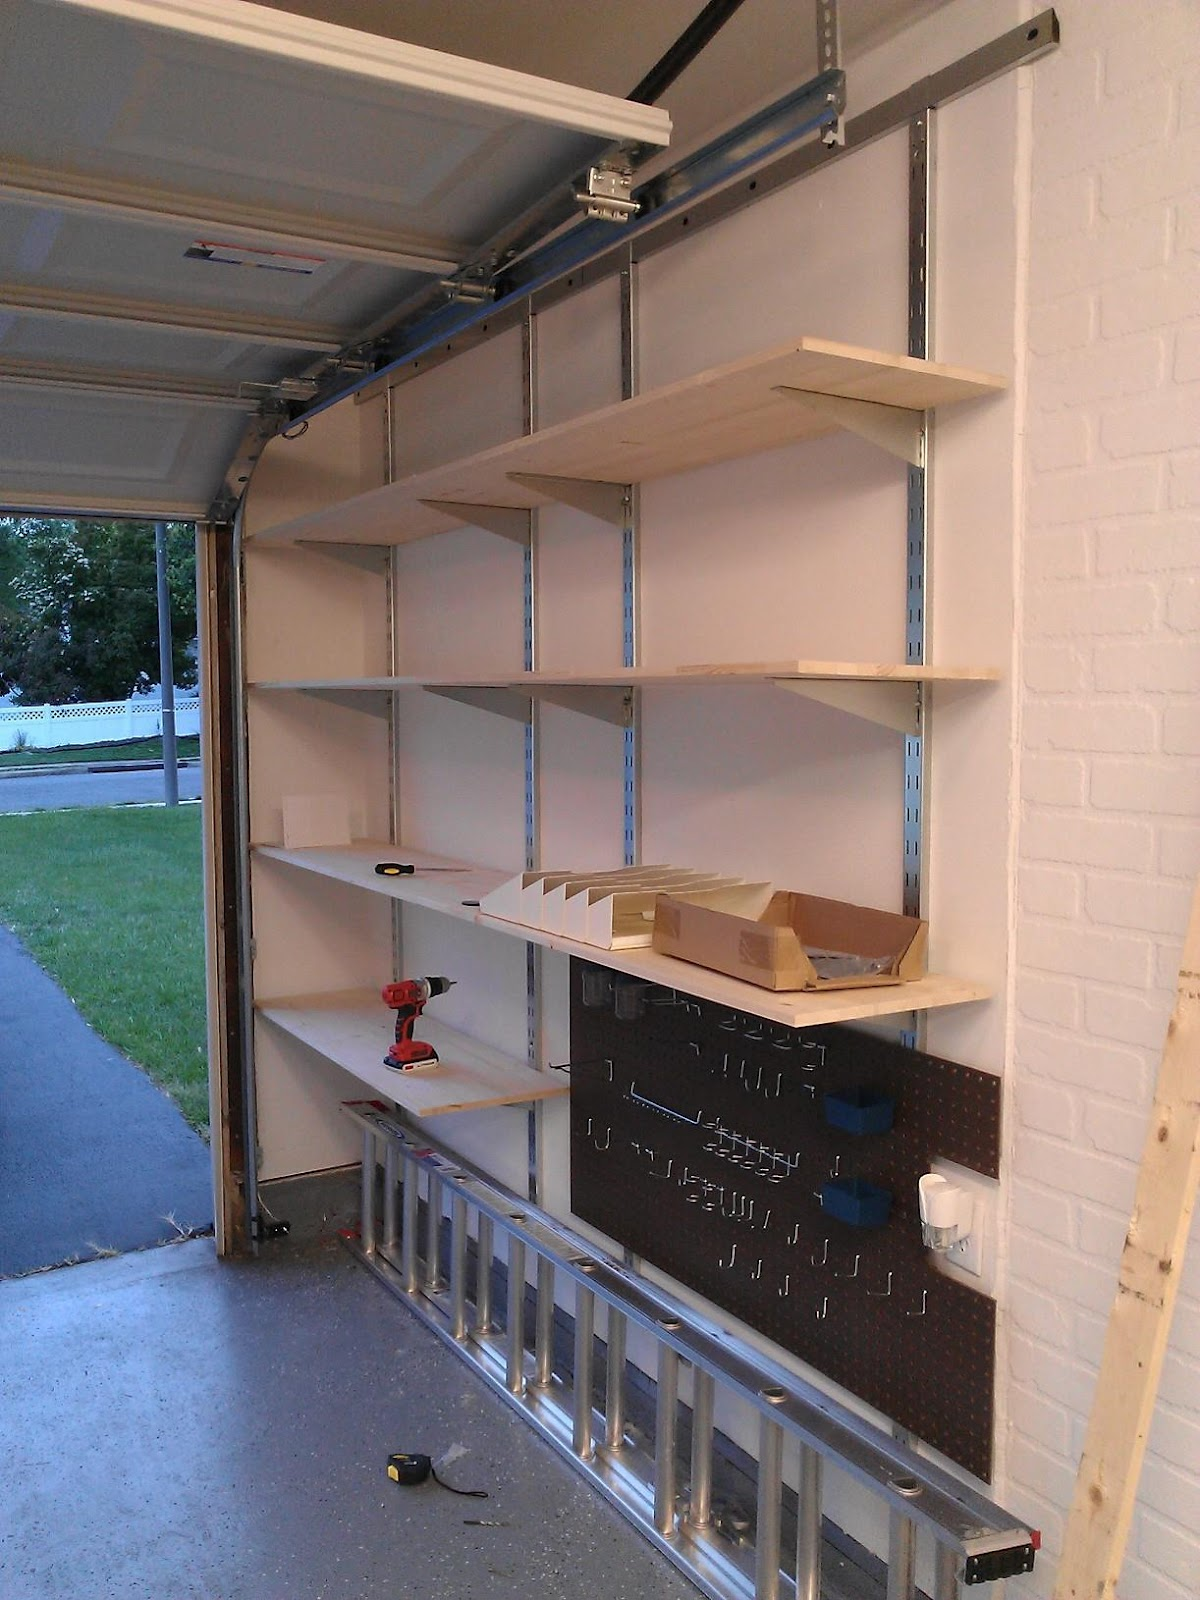 Ikea Garage Shelving J 43 A Before And After Garage